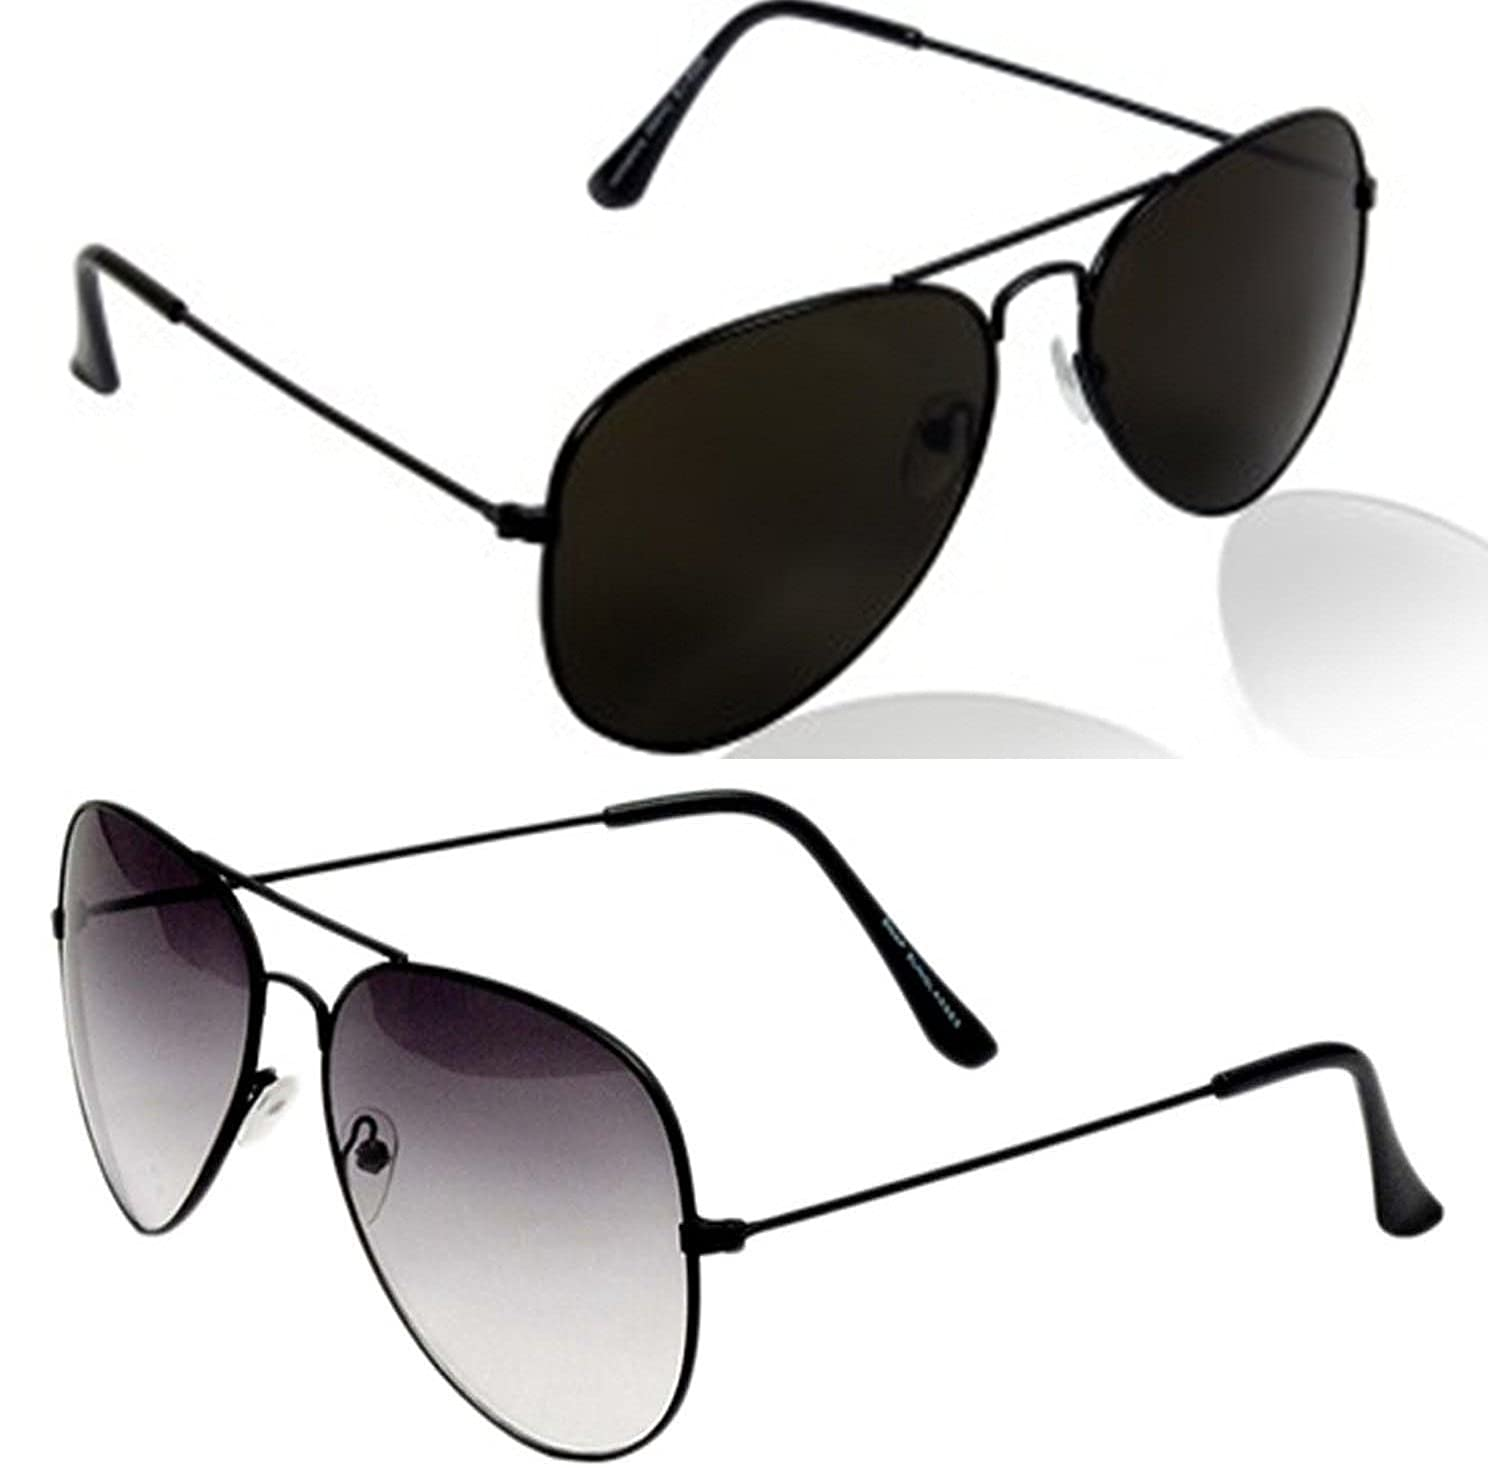 Younky Unisex Combo Offer Pack of UV Protected Aviator Stylish Mercury Sunglasses For Men Women Boys & Girls (BB-BSBlk|55|Black) - 2 Sunglass Case